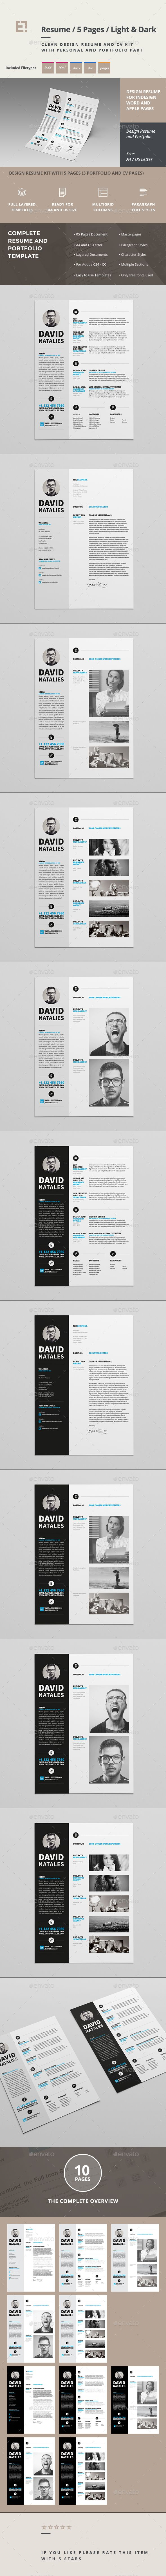 Professional Sales Resume Word  Best Images About Resume Templates Microsoft Word On  Resume Format Google Docs with Resume Services Seattle Resume Resume Templatescurriculum Vitaemicrosoft Wordcvprint  Adjectives To Use On A Resume Word